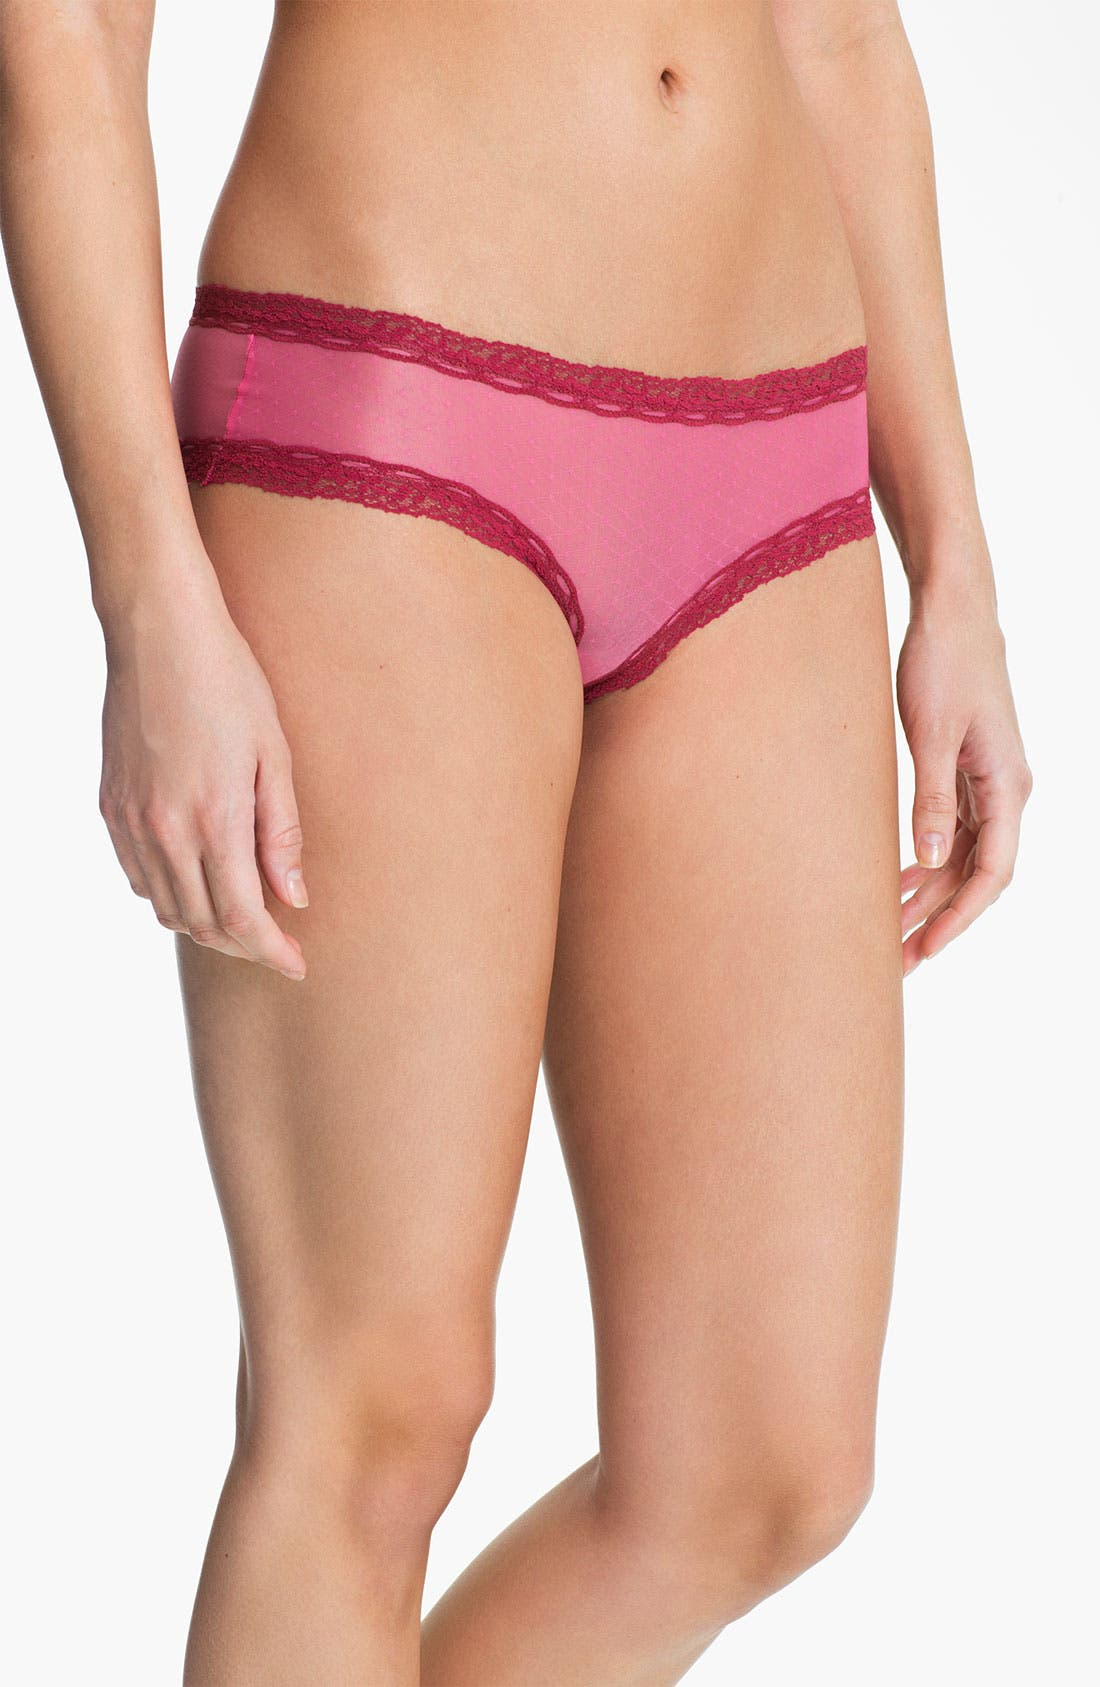 Alternate Image 1 Selected - DKNY 'Modern Lights' Mid-Rise Hipster Bikini